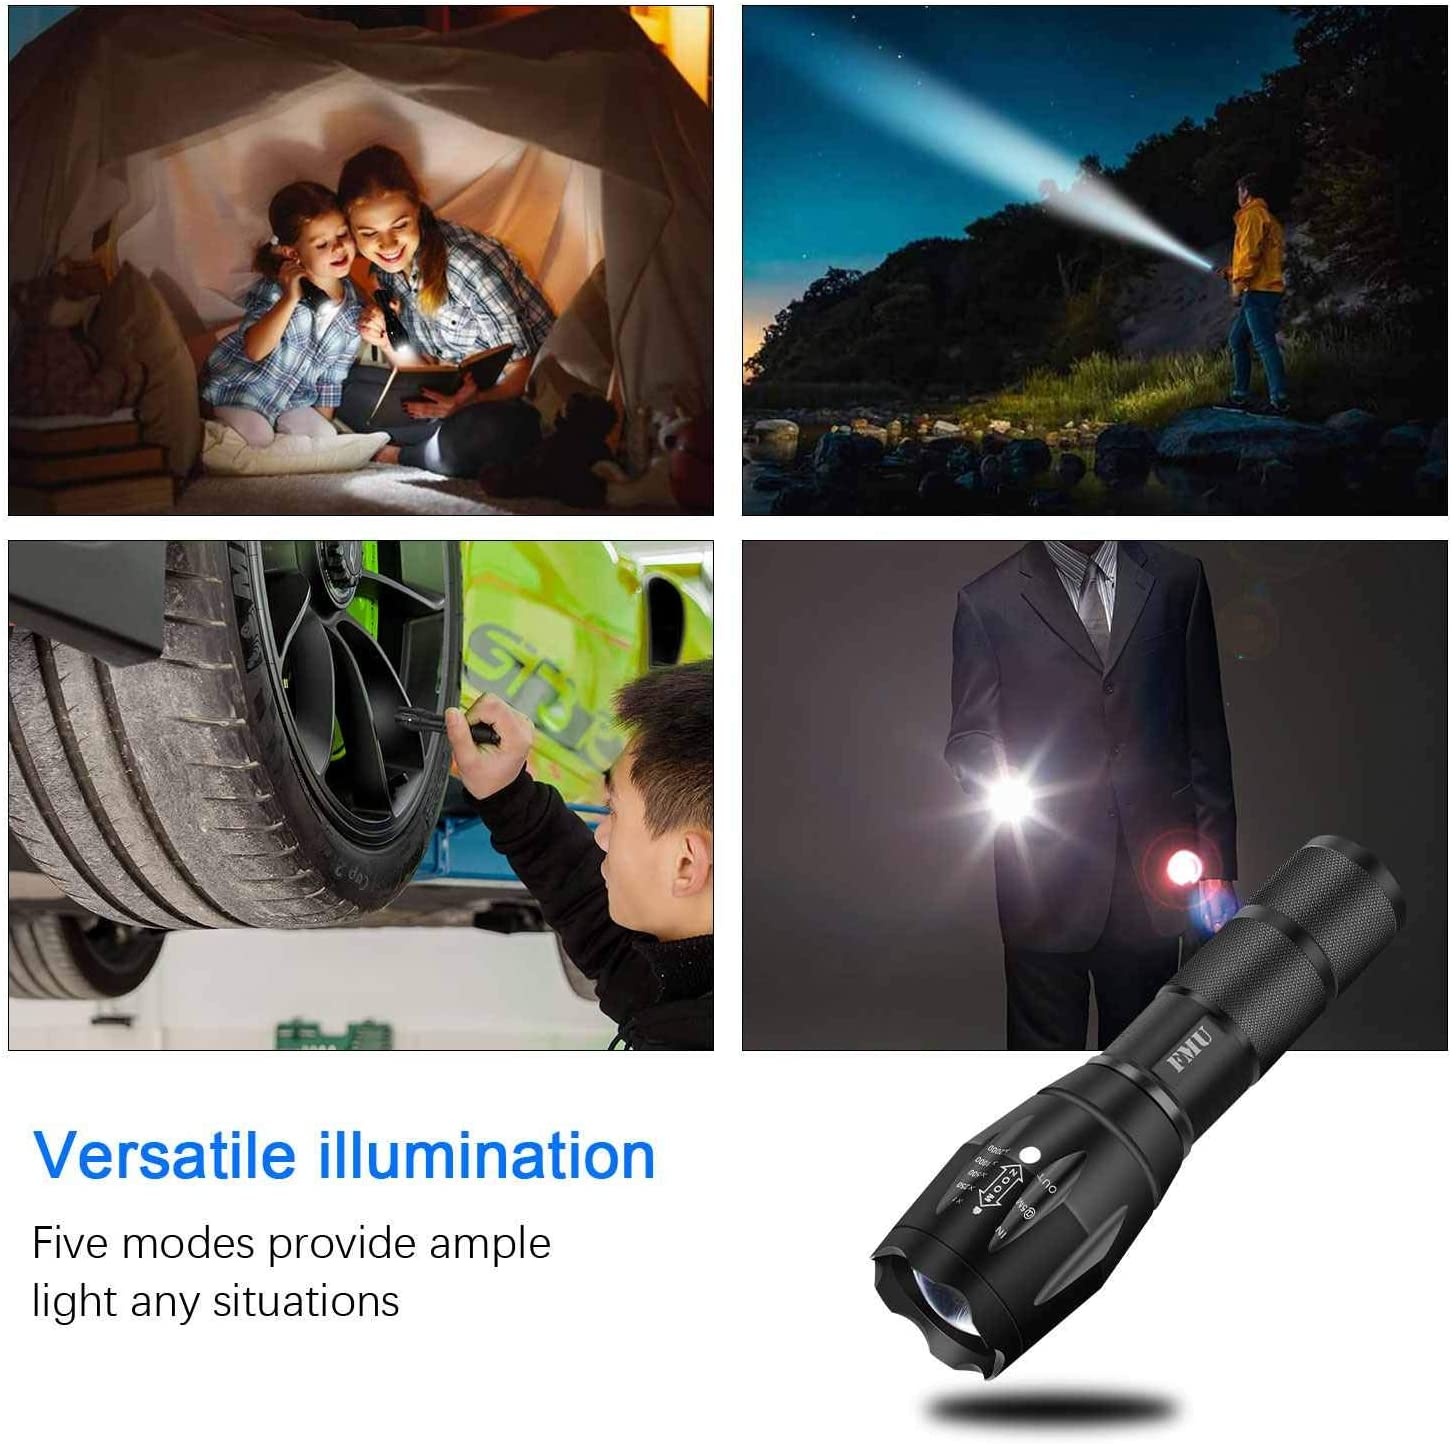 LED Tactical Flashlight, FMU Super Bright High Lumen Portable Outdoor Torch Light Zoomable Flashlight with 5 Light Modes, Emergency, Outdoor, Everyday Flashlights [2 PACK]